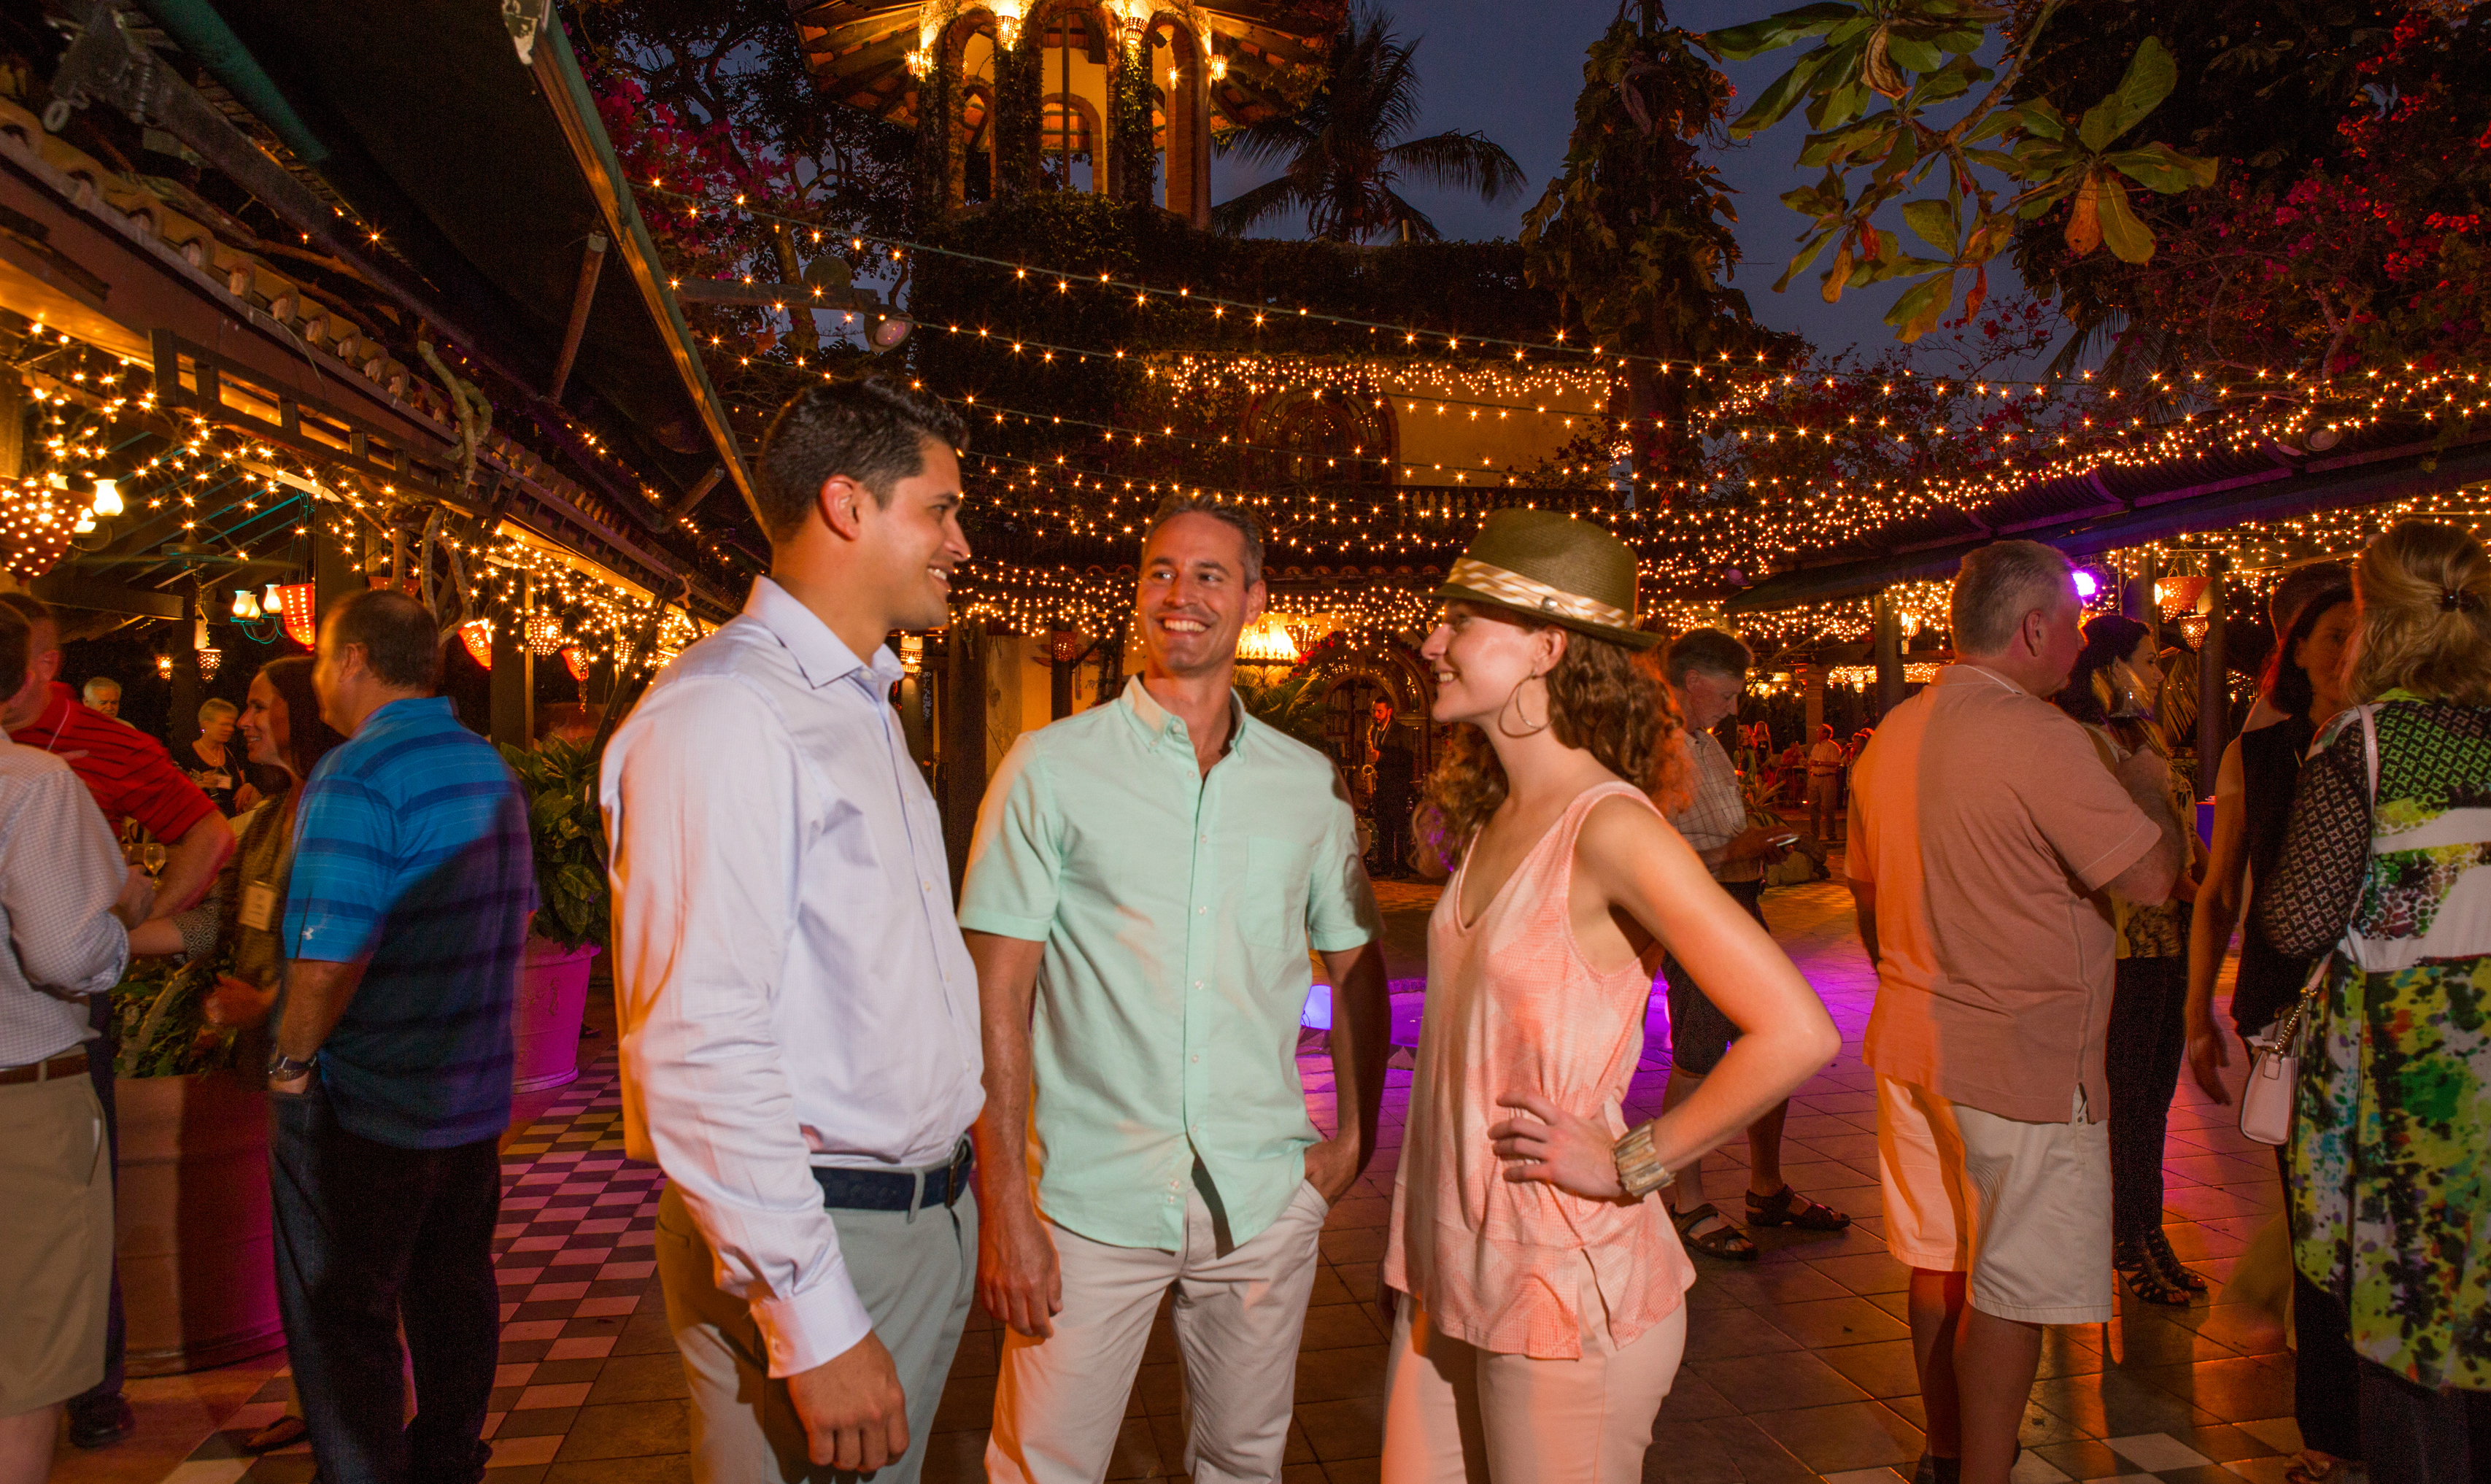 Meeting attendees mingle at a nighttime event in Puerto Rico.